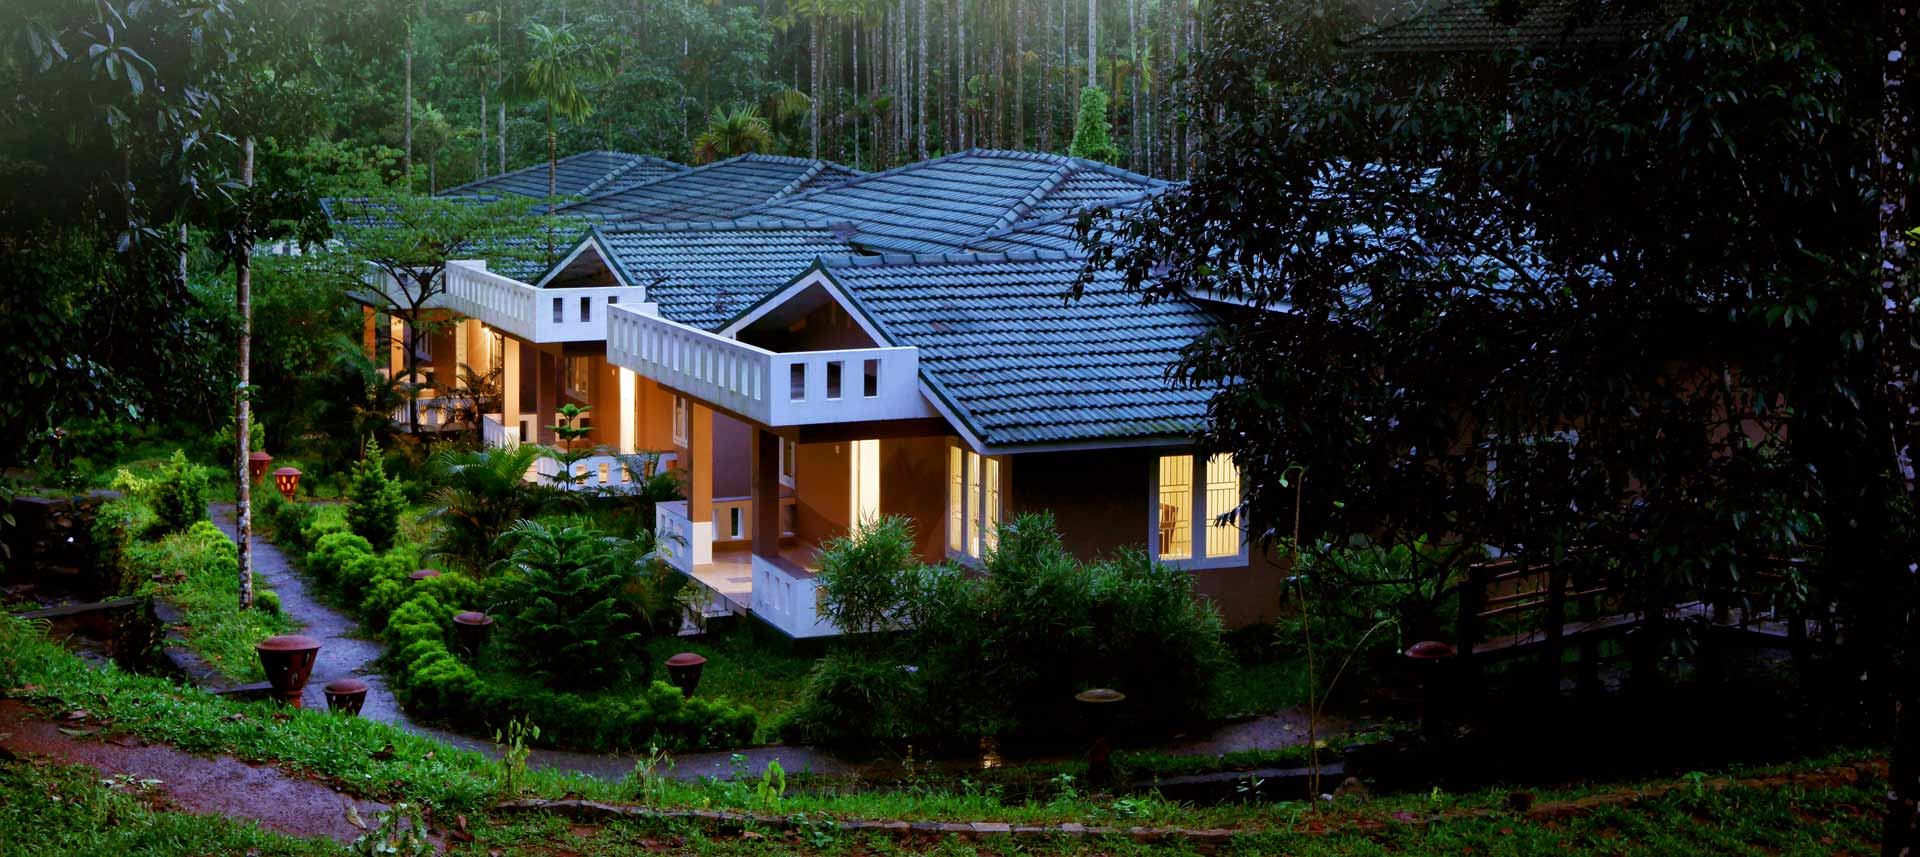 Villas at Lakkidi Village Resort Wayanad -  beautiful light set up in the night.